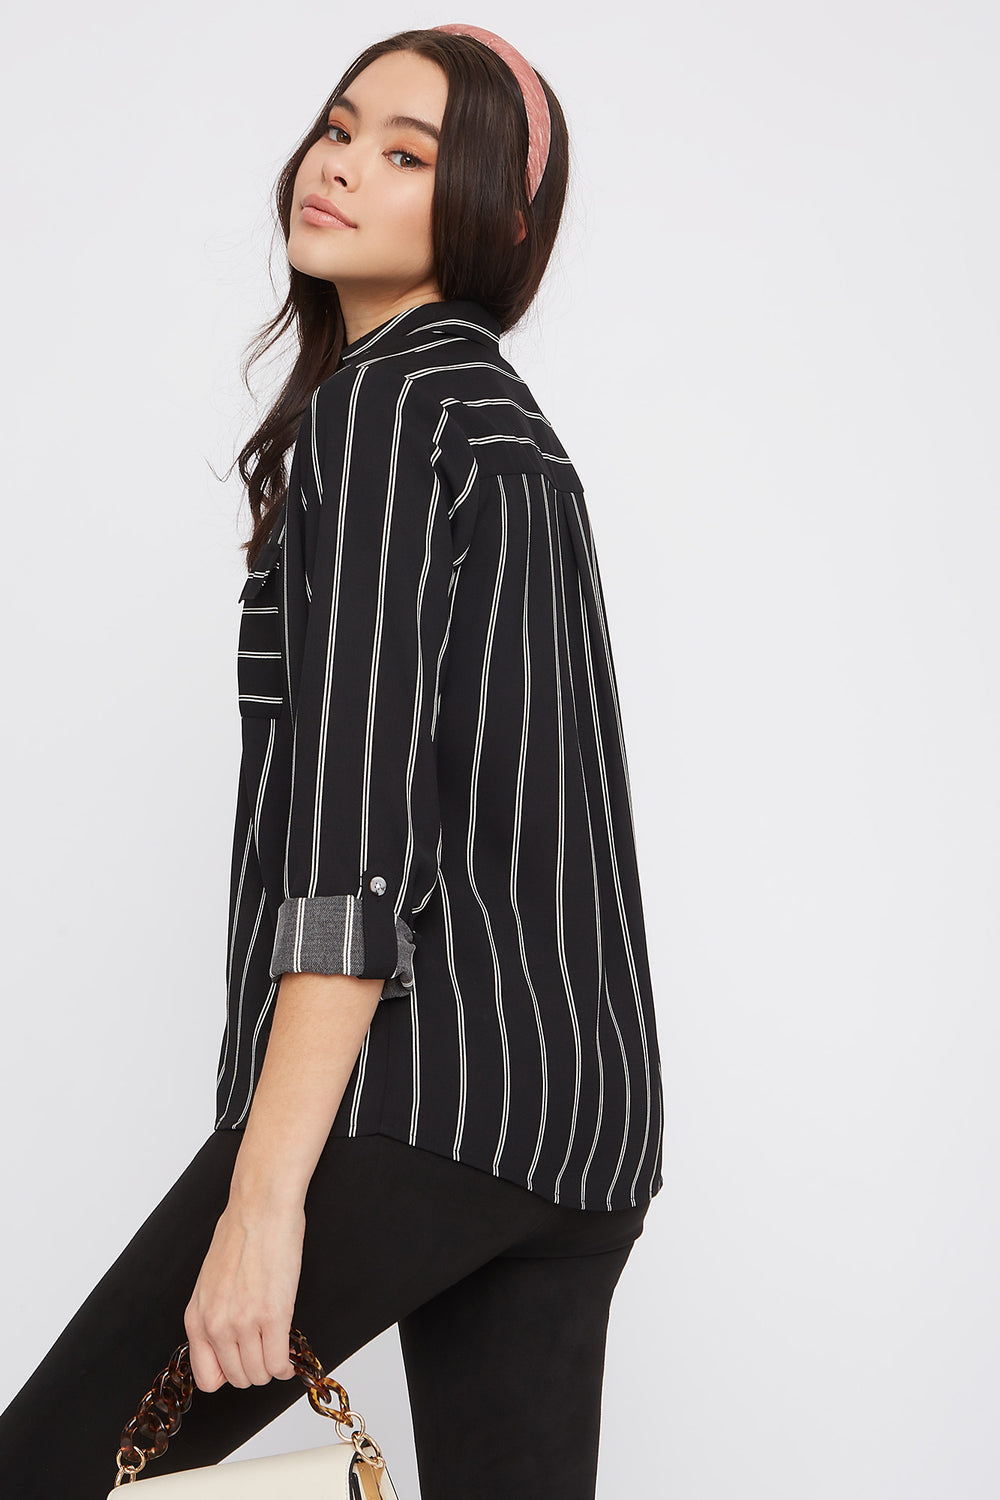 Hammered Printed Roll-Tab Button-Up Blouse Black with White